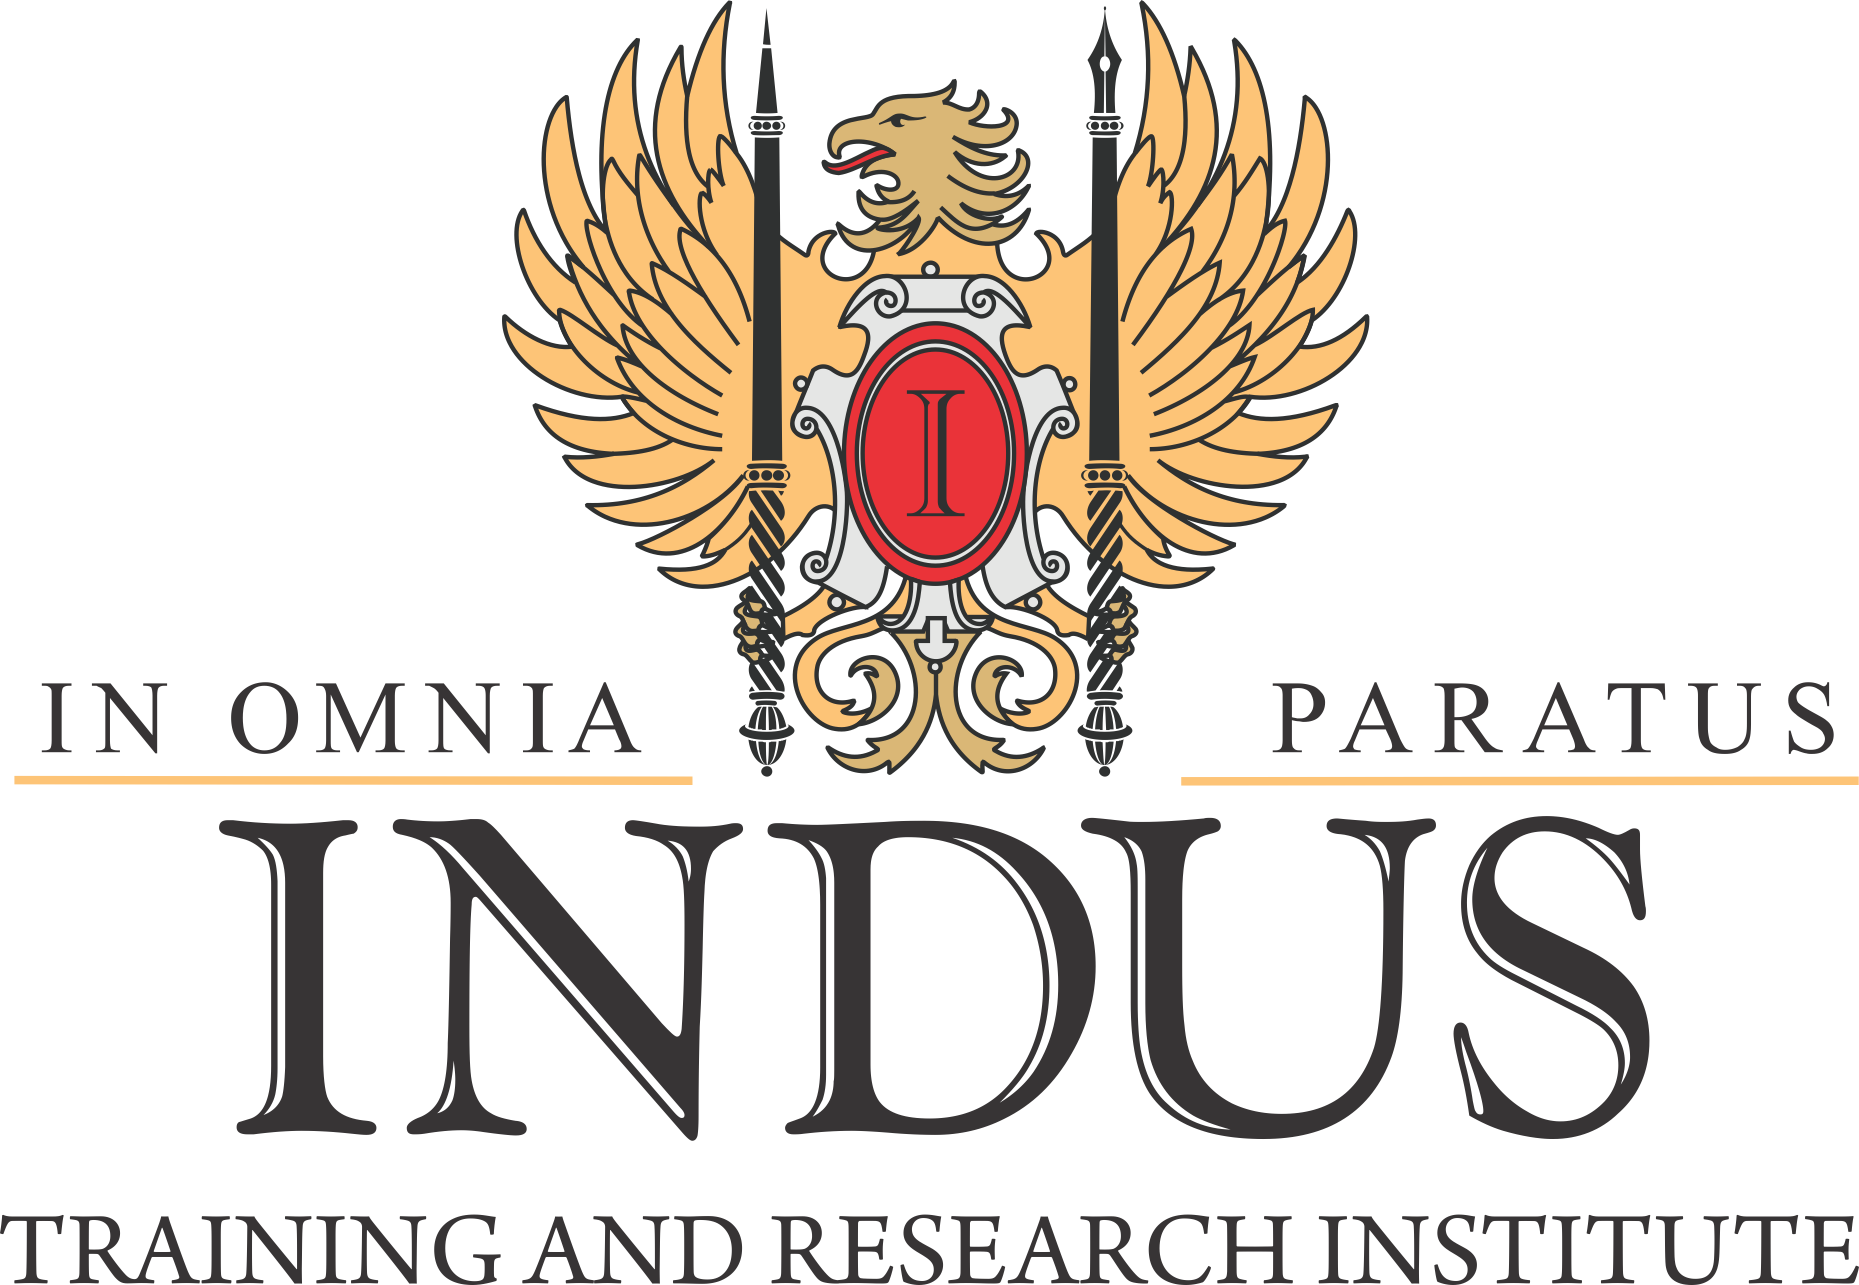 Indus Training and Research Institute - Bangalore Image